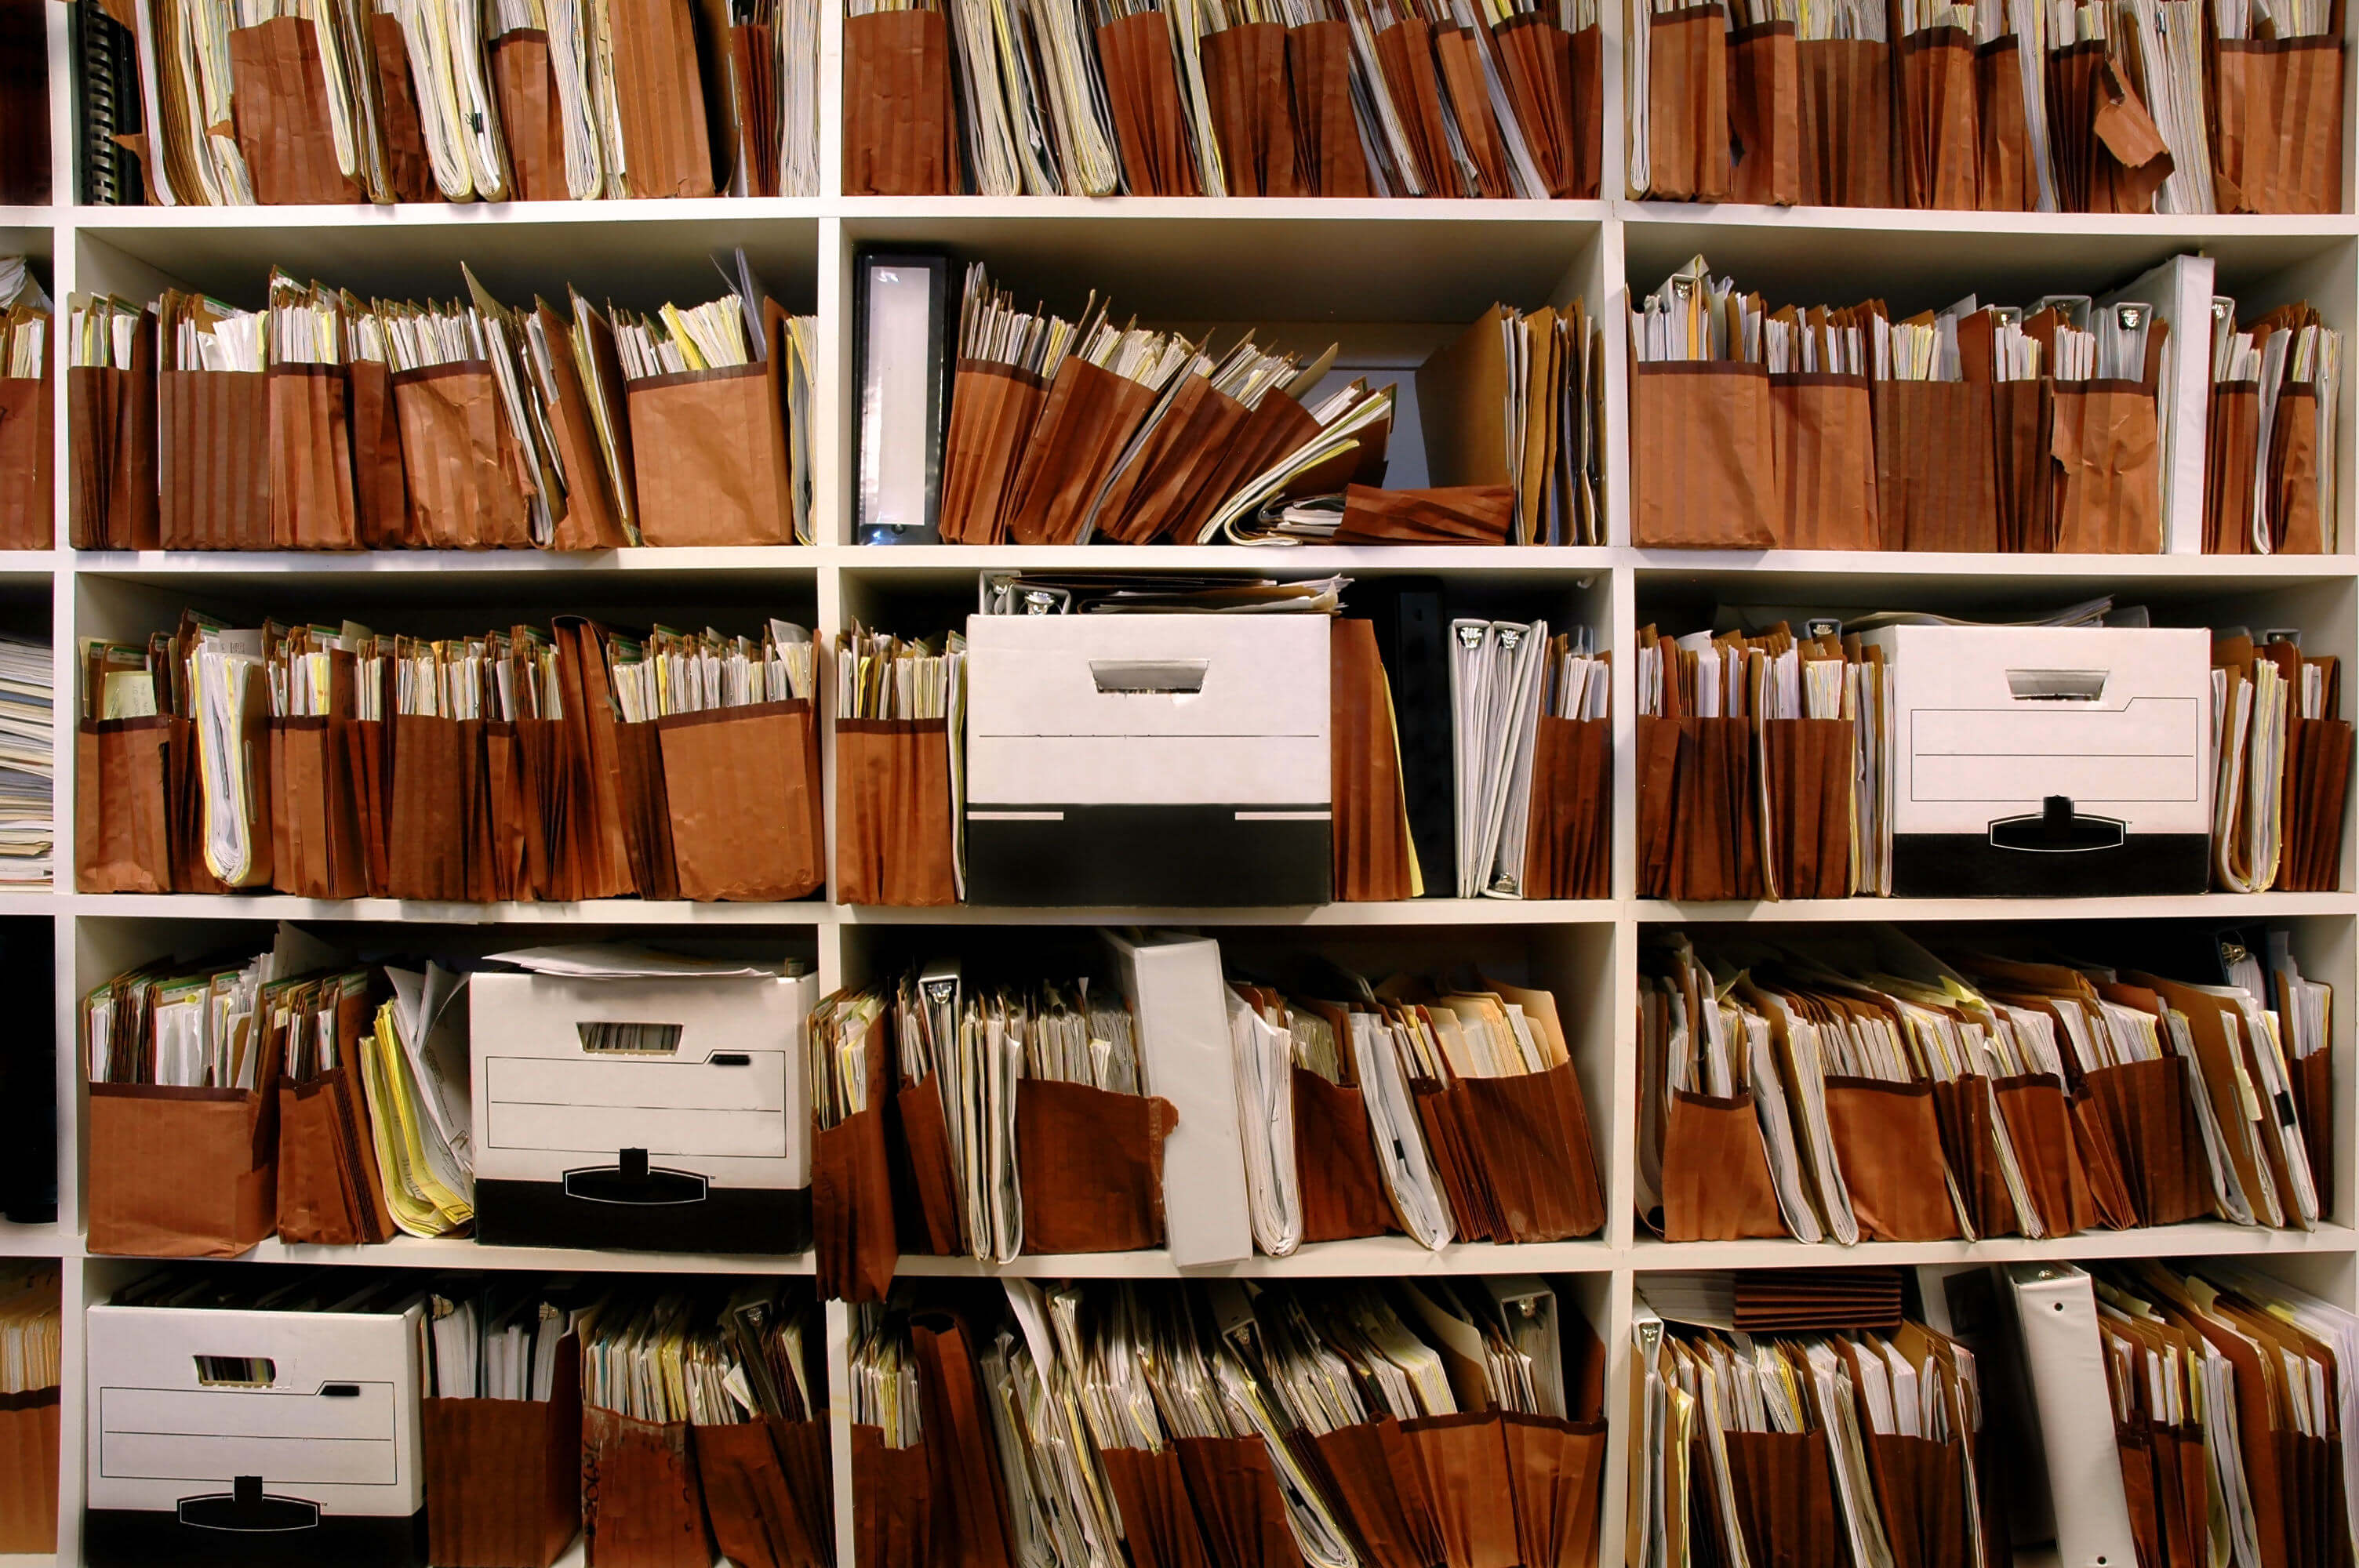 Legal Discovery Document Scanning